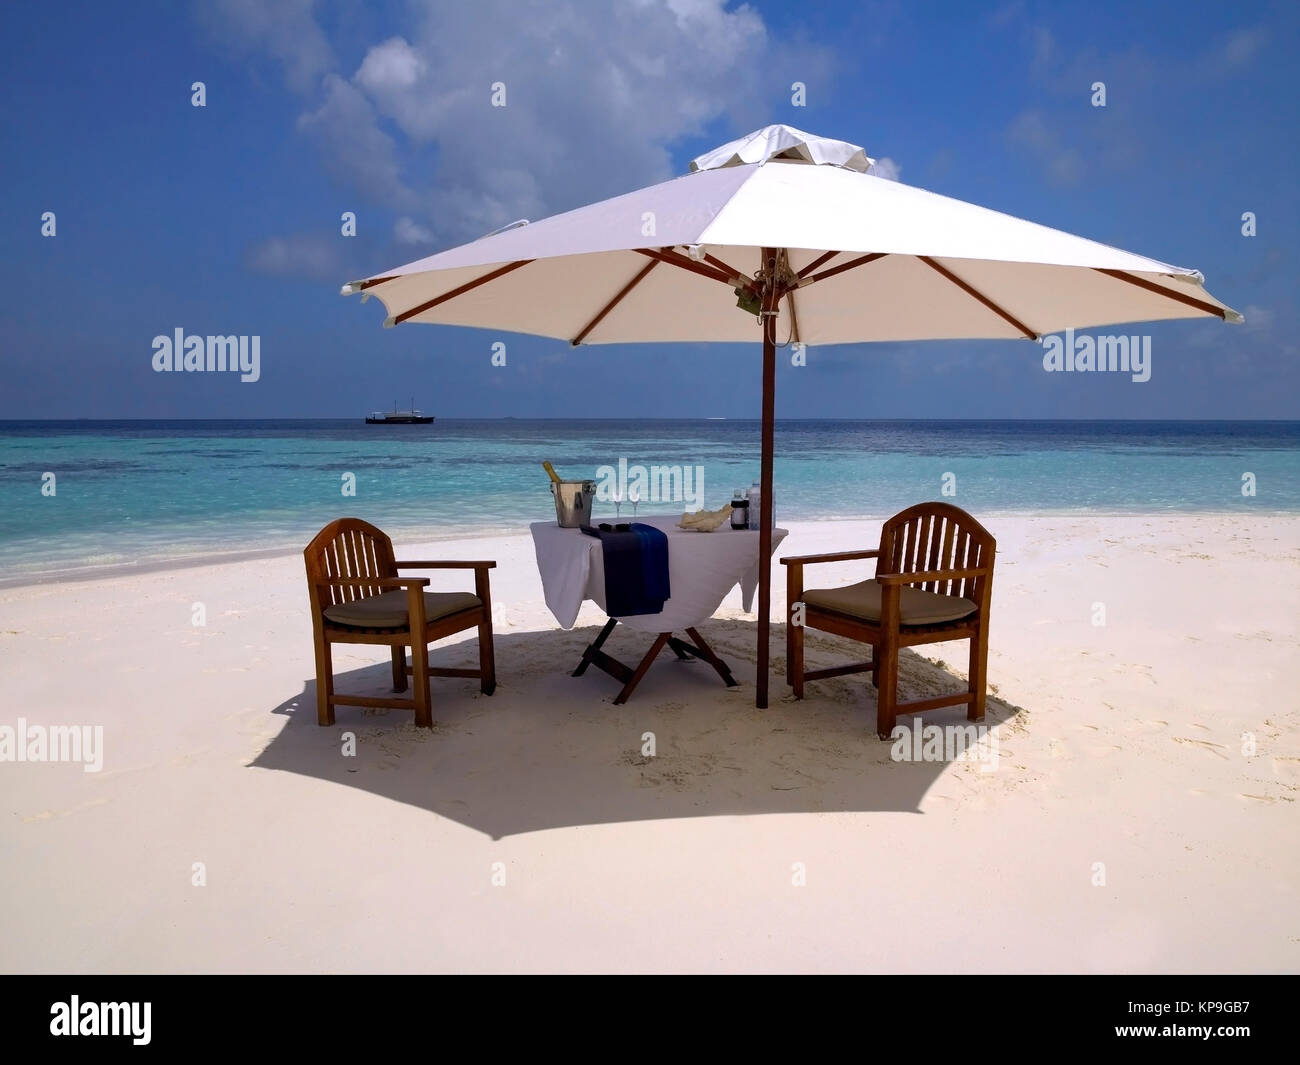 Luxury vacation paradise on a beach in the Maldives in the Indian Ocean. - Stock Image